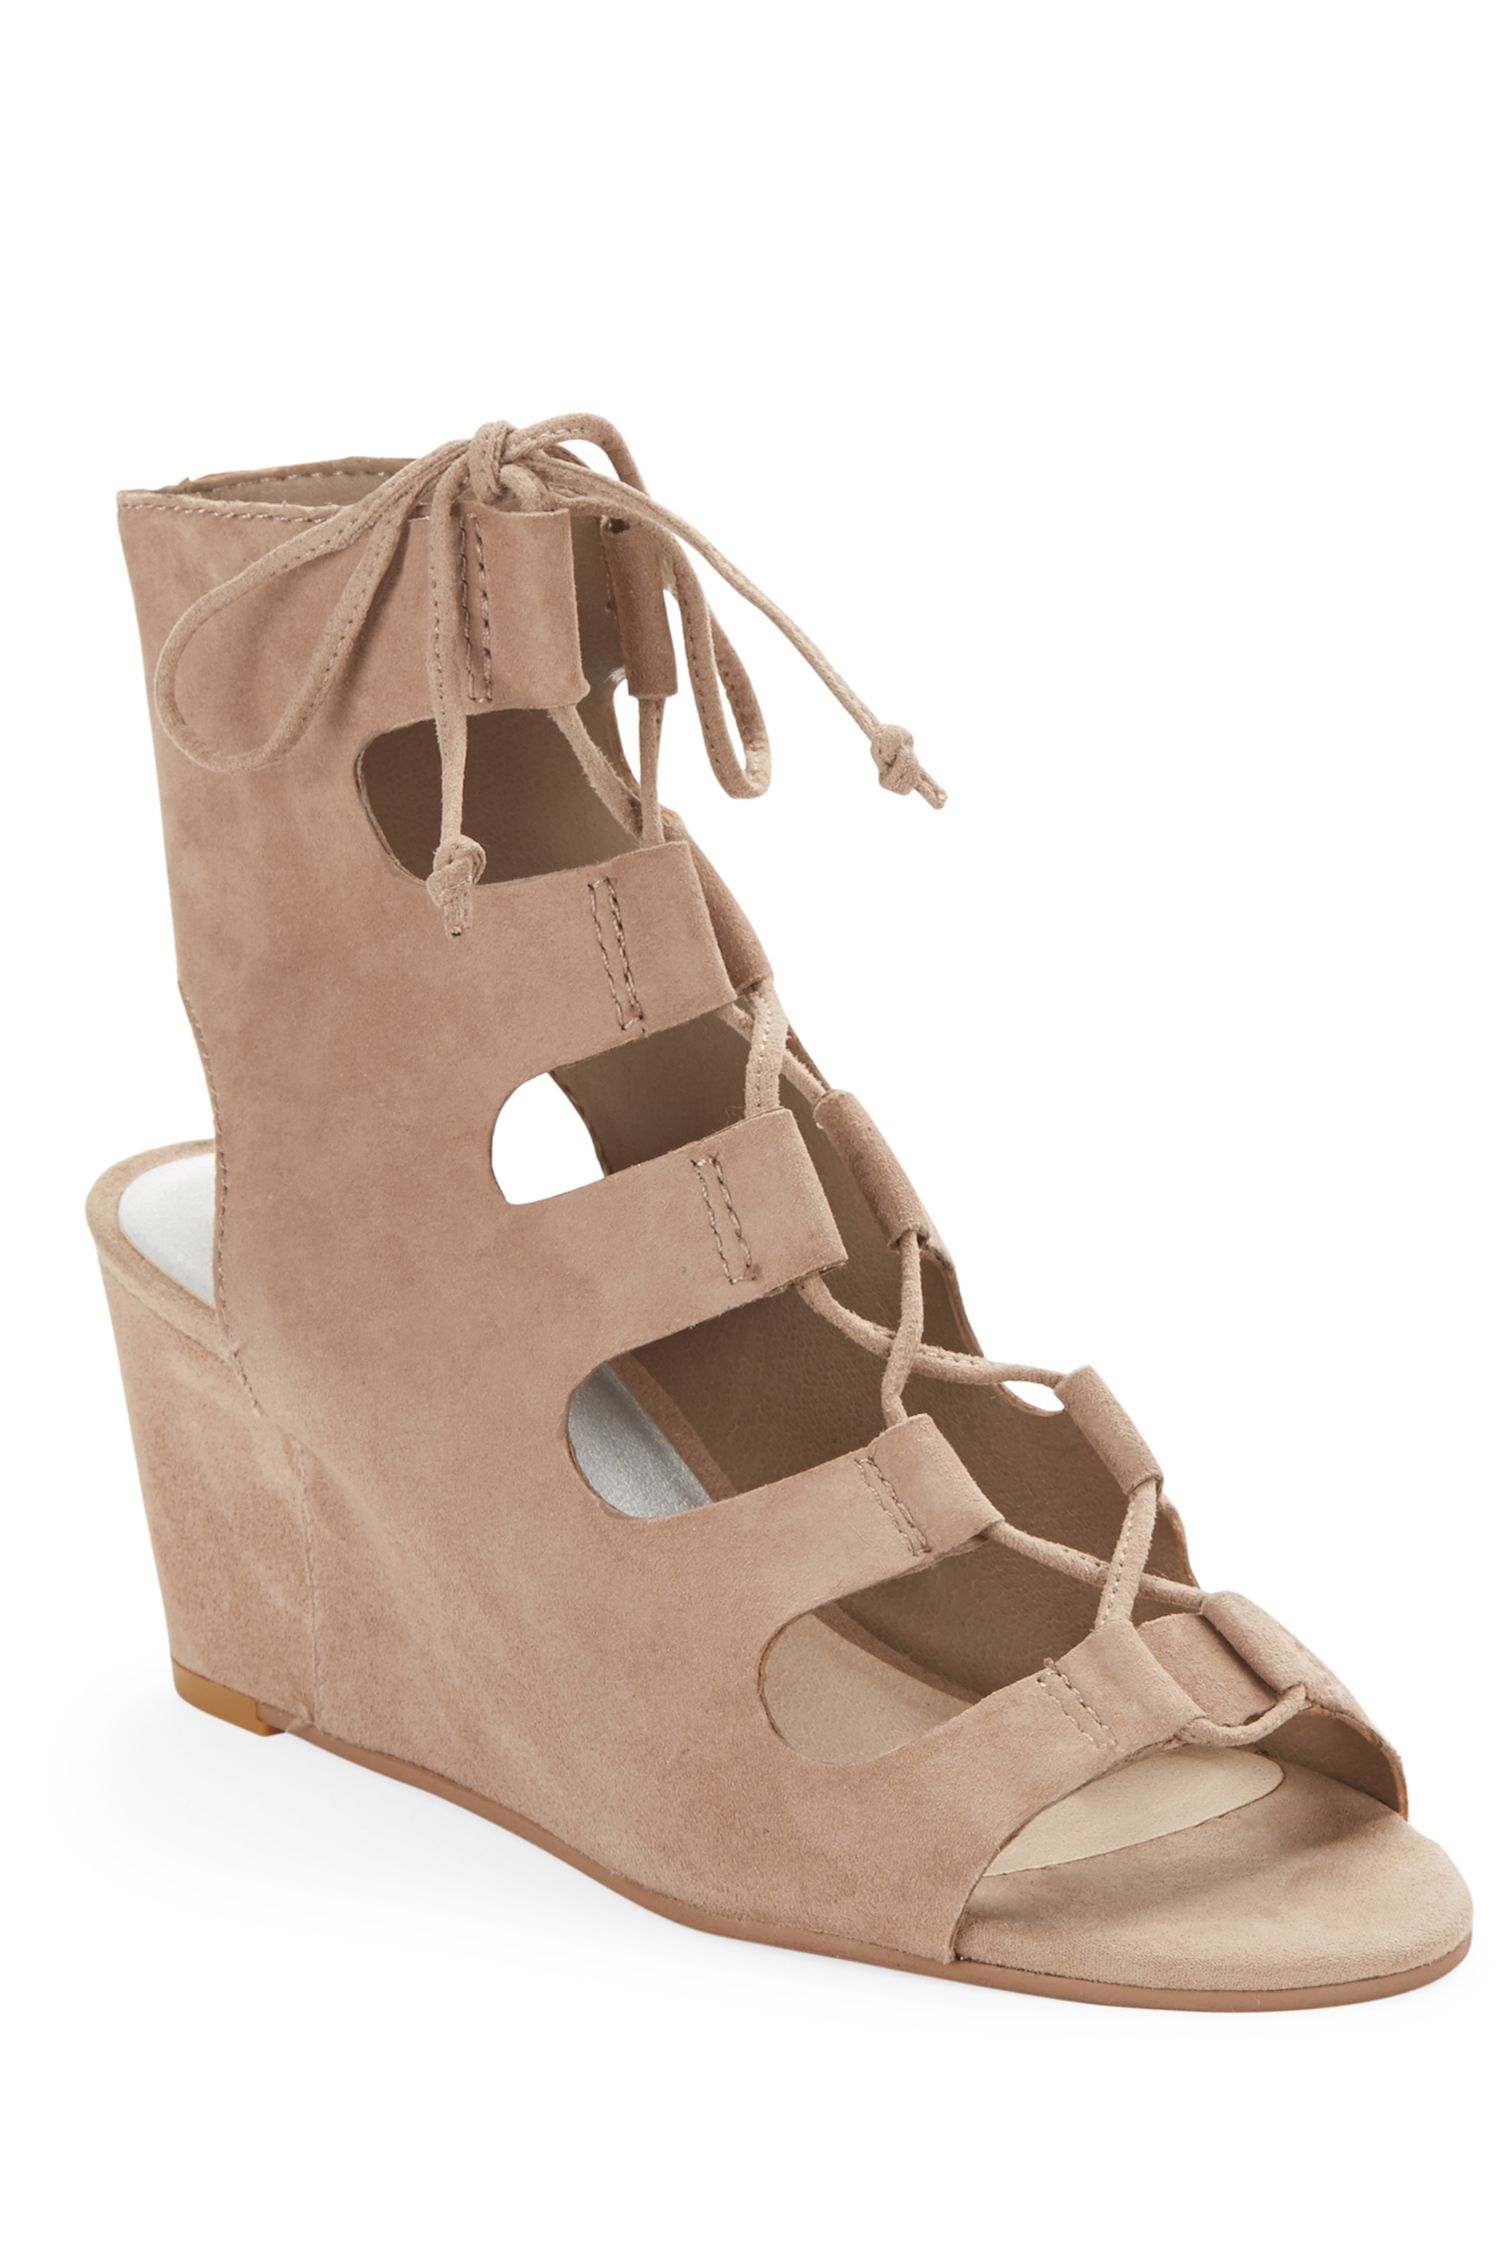 "<p>The lace-up feature is even more lovable in a soft suede and a wedge, when you want to look  *good* but have shit to do. </p><p><em>Dolce Vita Suede Lace-Up Wedges, $130&#x3B; </em><a href=""http://www.lordandtaylor.com/webapp/wcs/stores/servlet/en/lord-and-taylor/suede-lace-up-wedges"" target=""_blank""><em>lordandtaylor.com</em></a></p>"